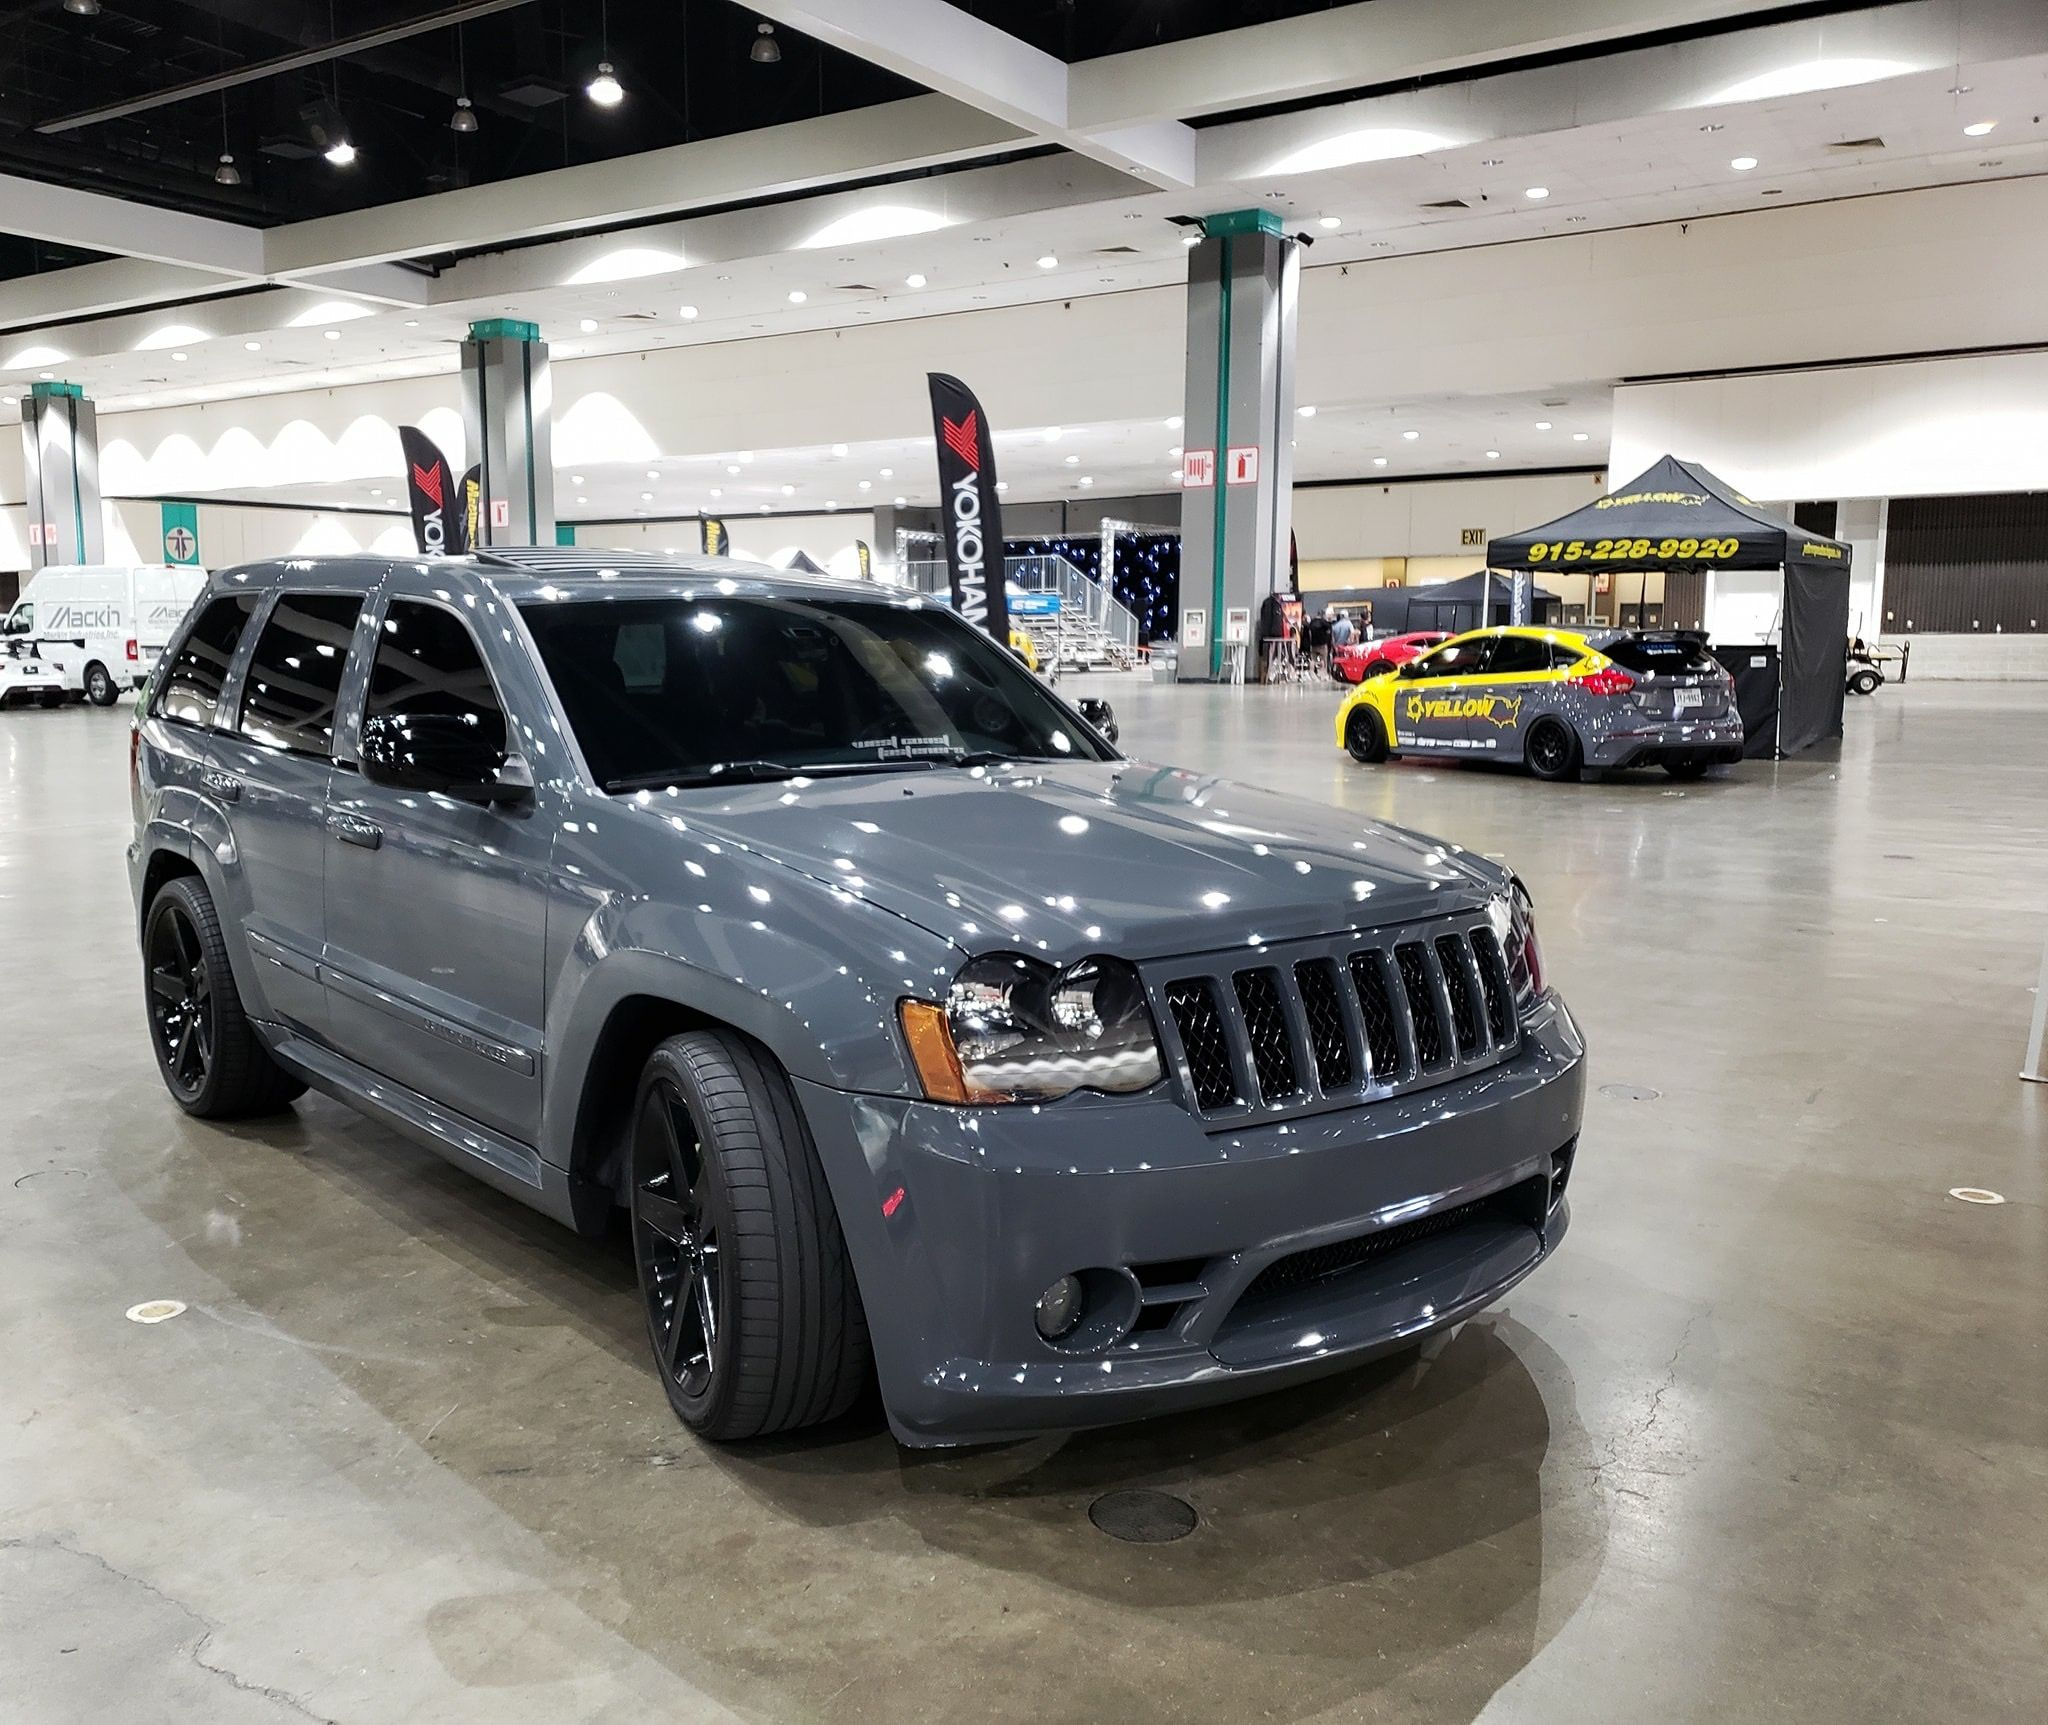 Gray Jeep Grand Cherokee Srt8 Wk1 With Images Jeep Srt8 Srt